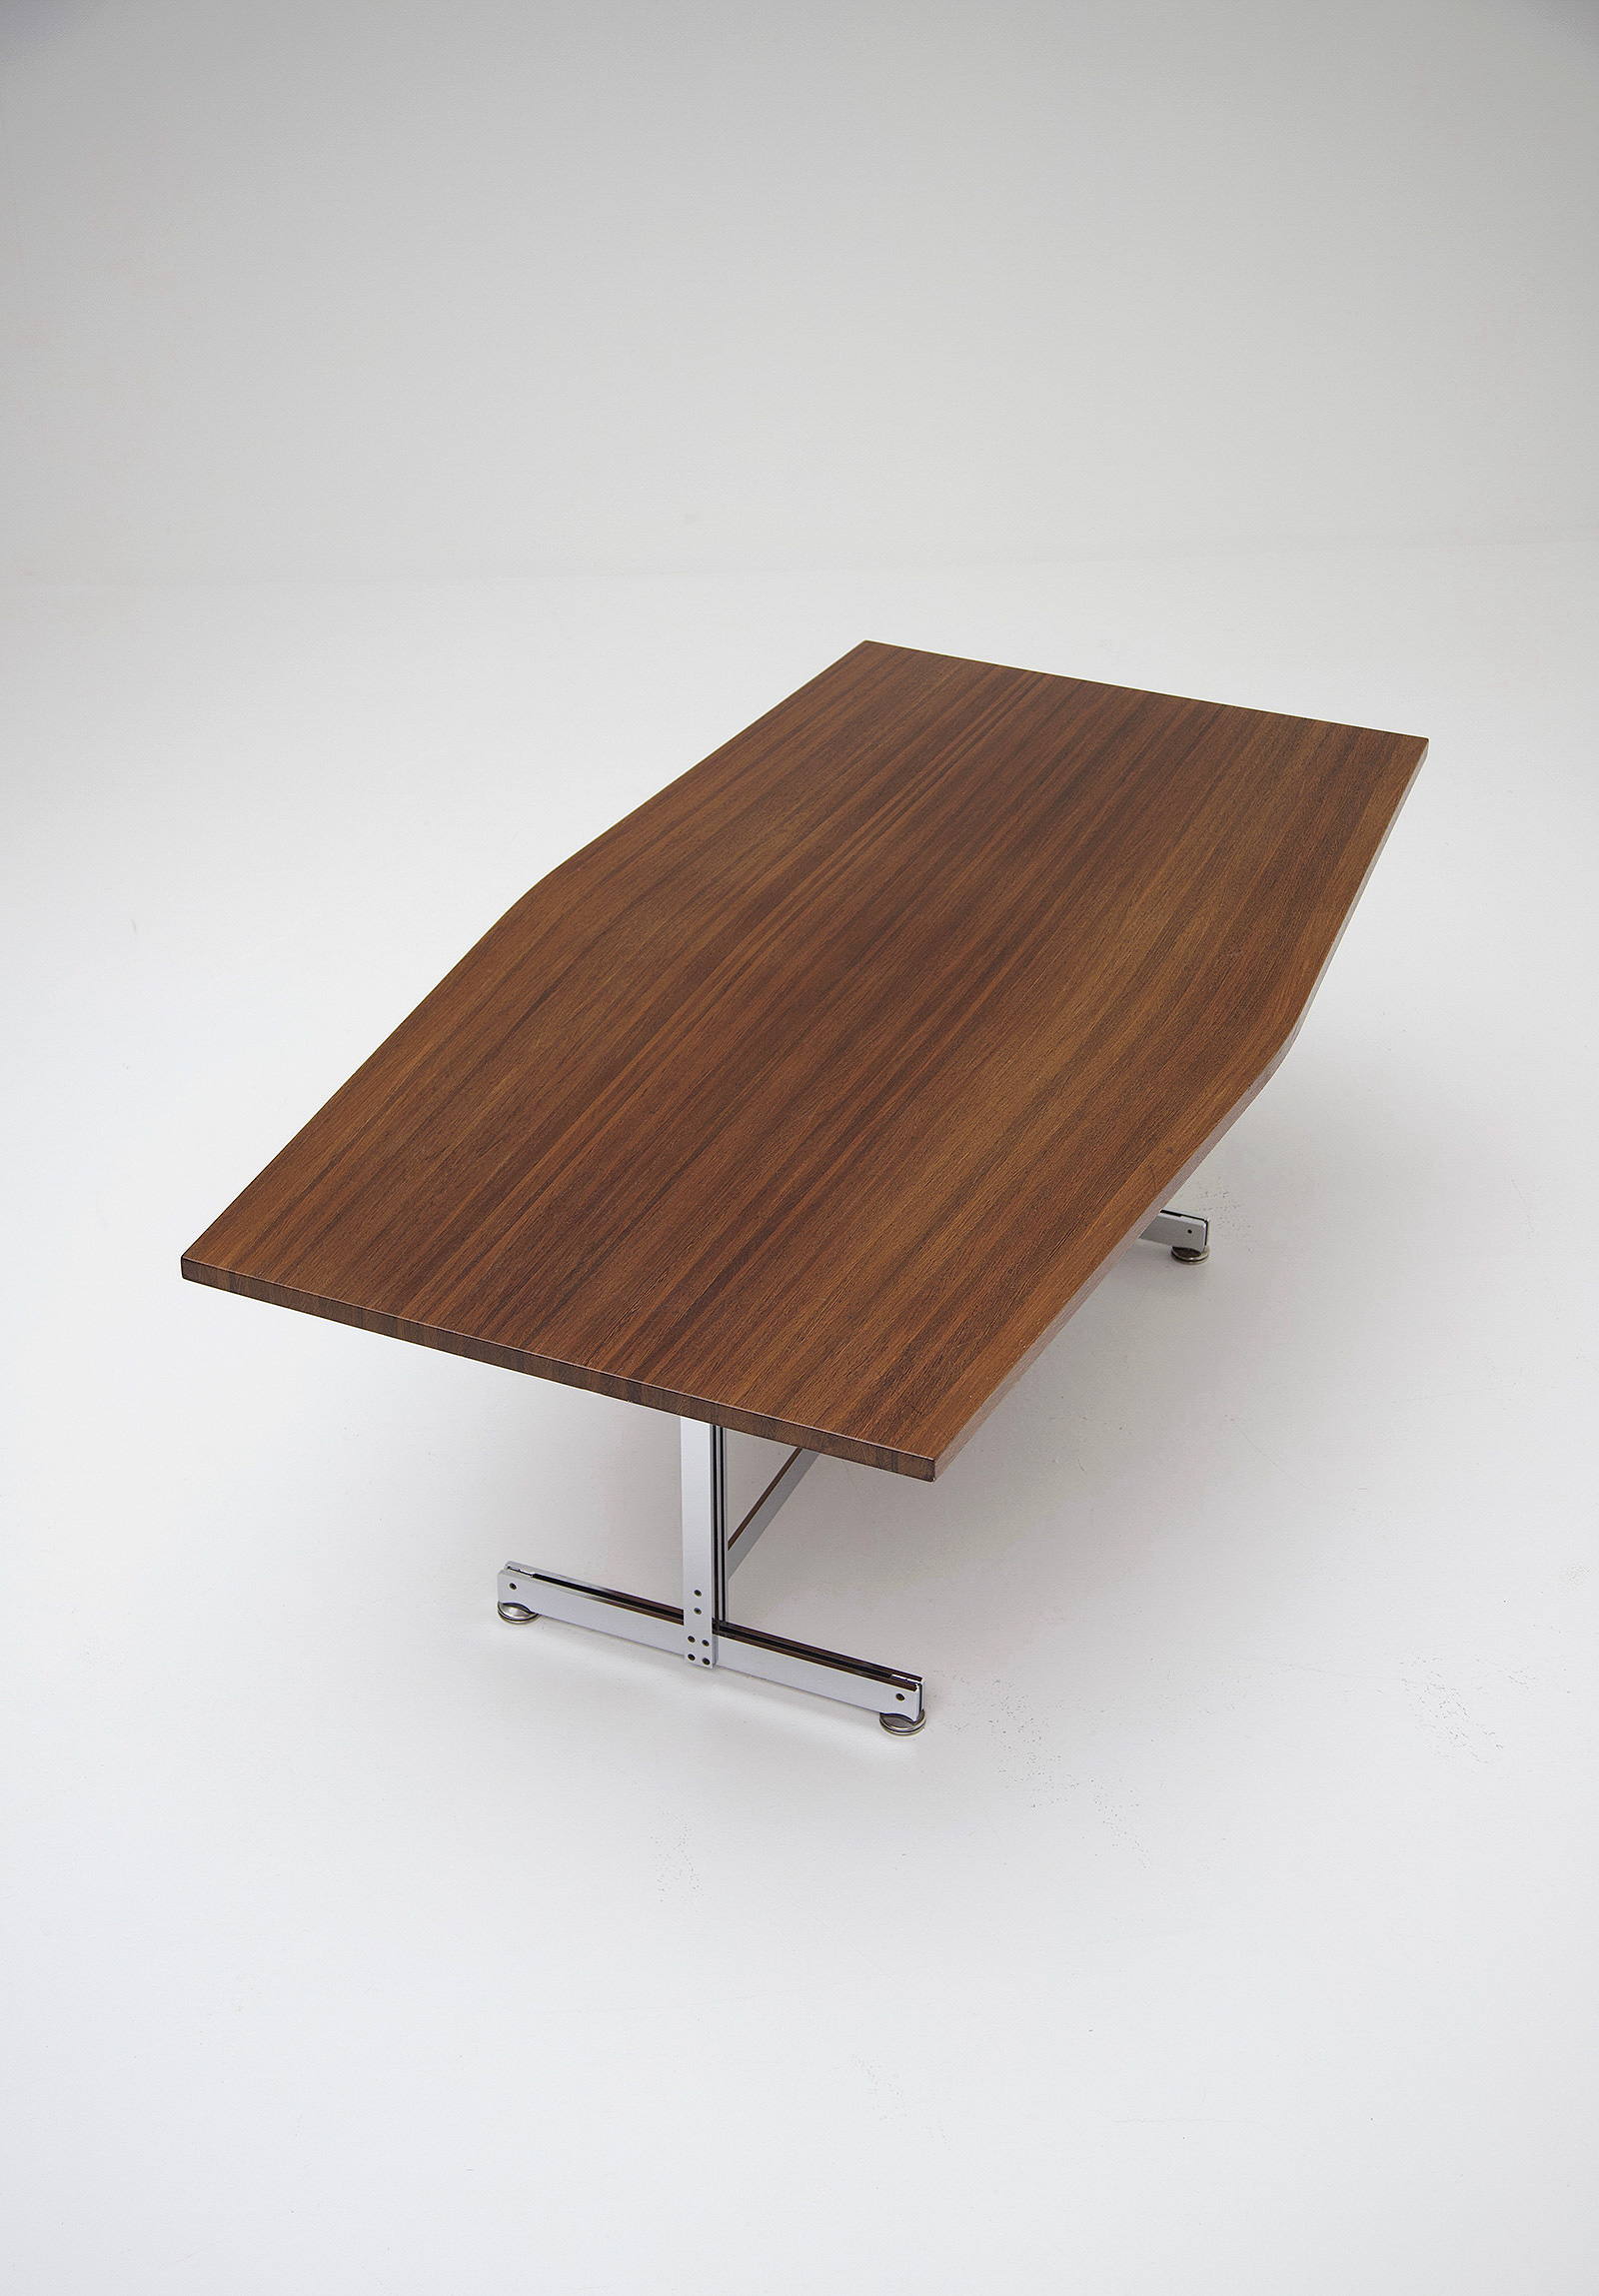 Jules Wabbes Wenge Table